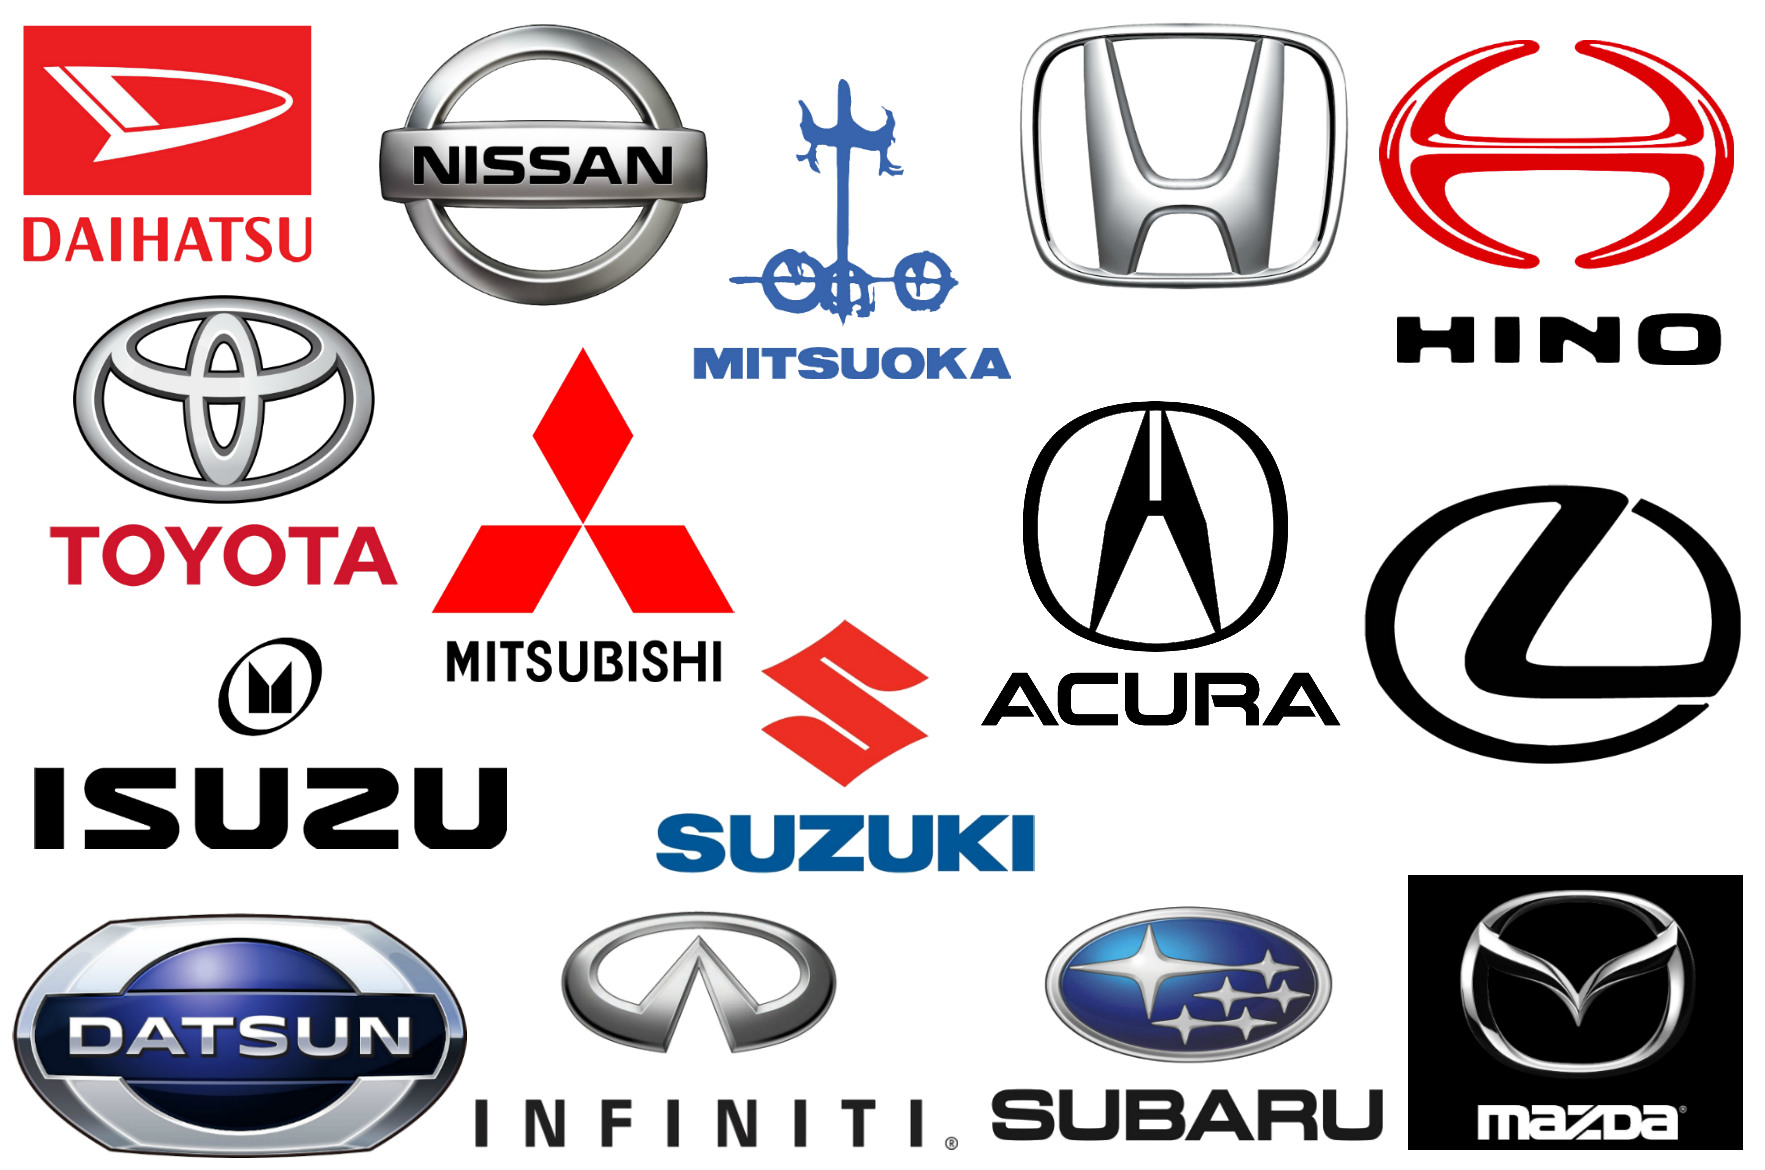 All Car Brands >> Japanese Car Brands Companies And Manufacturers Car Brand Names Com